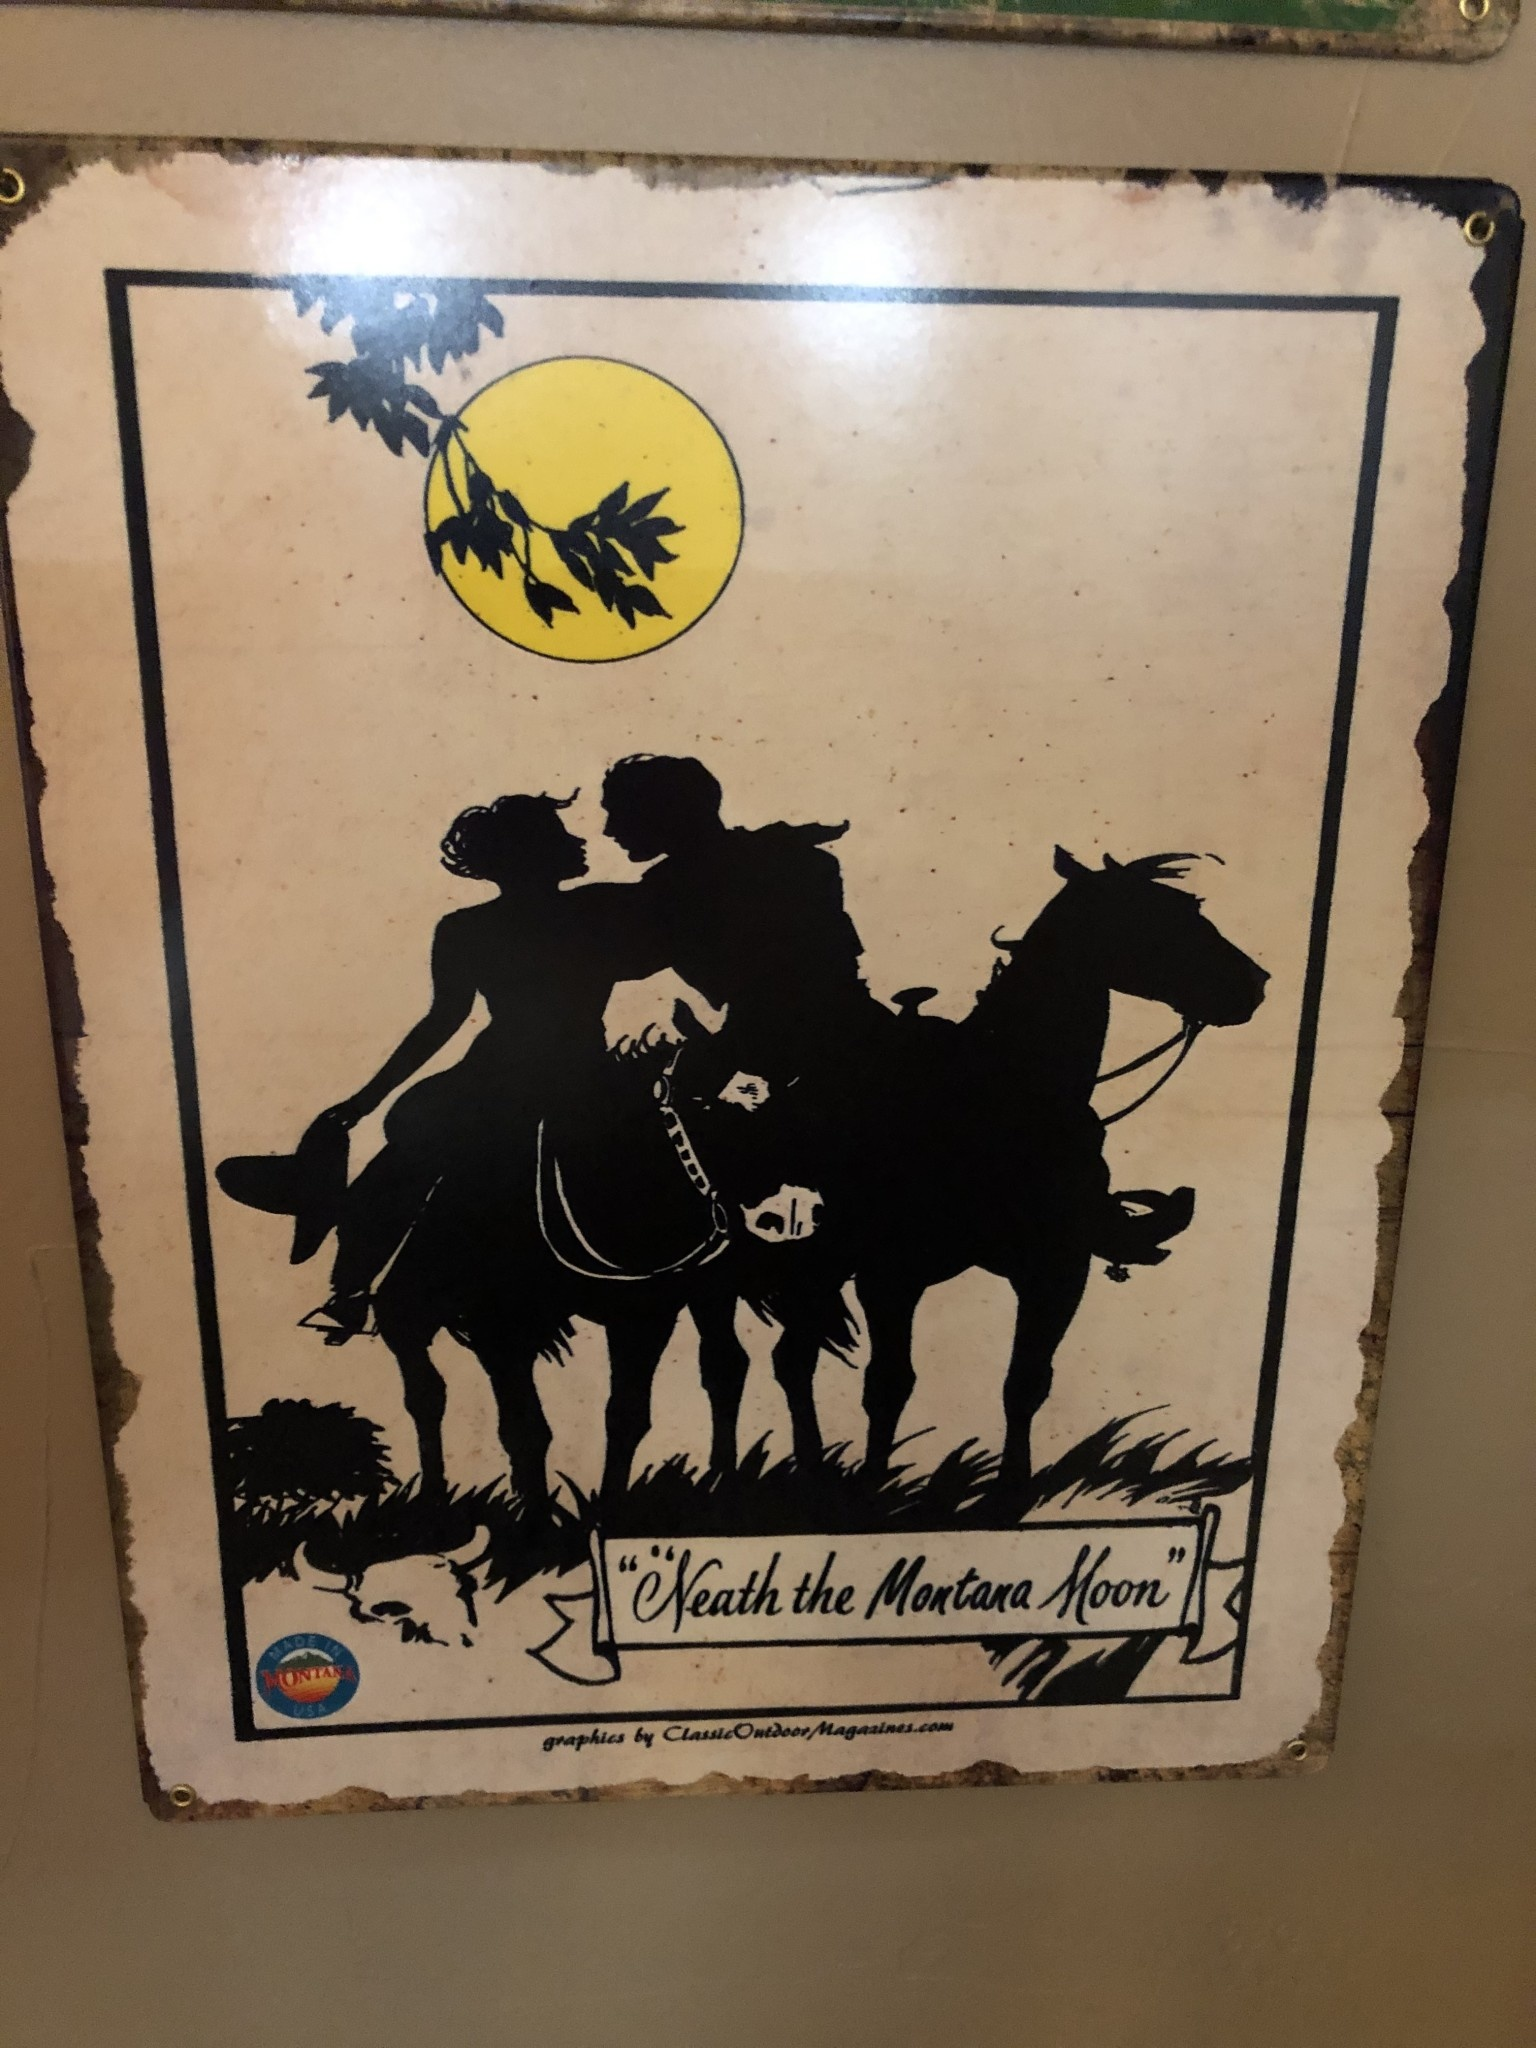 Classic Outdoor Magazines #21  Neath a Montana Moon 12x15 metal sign